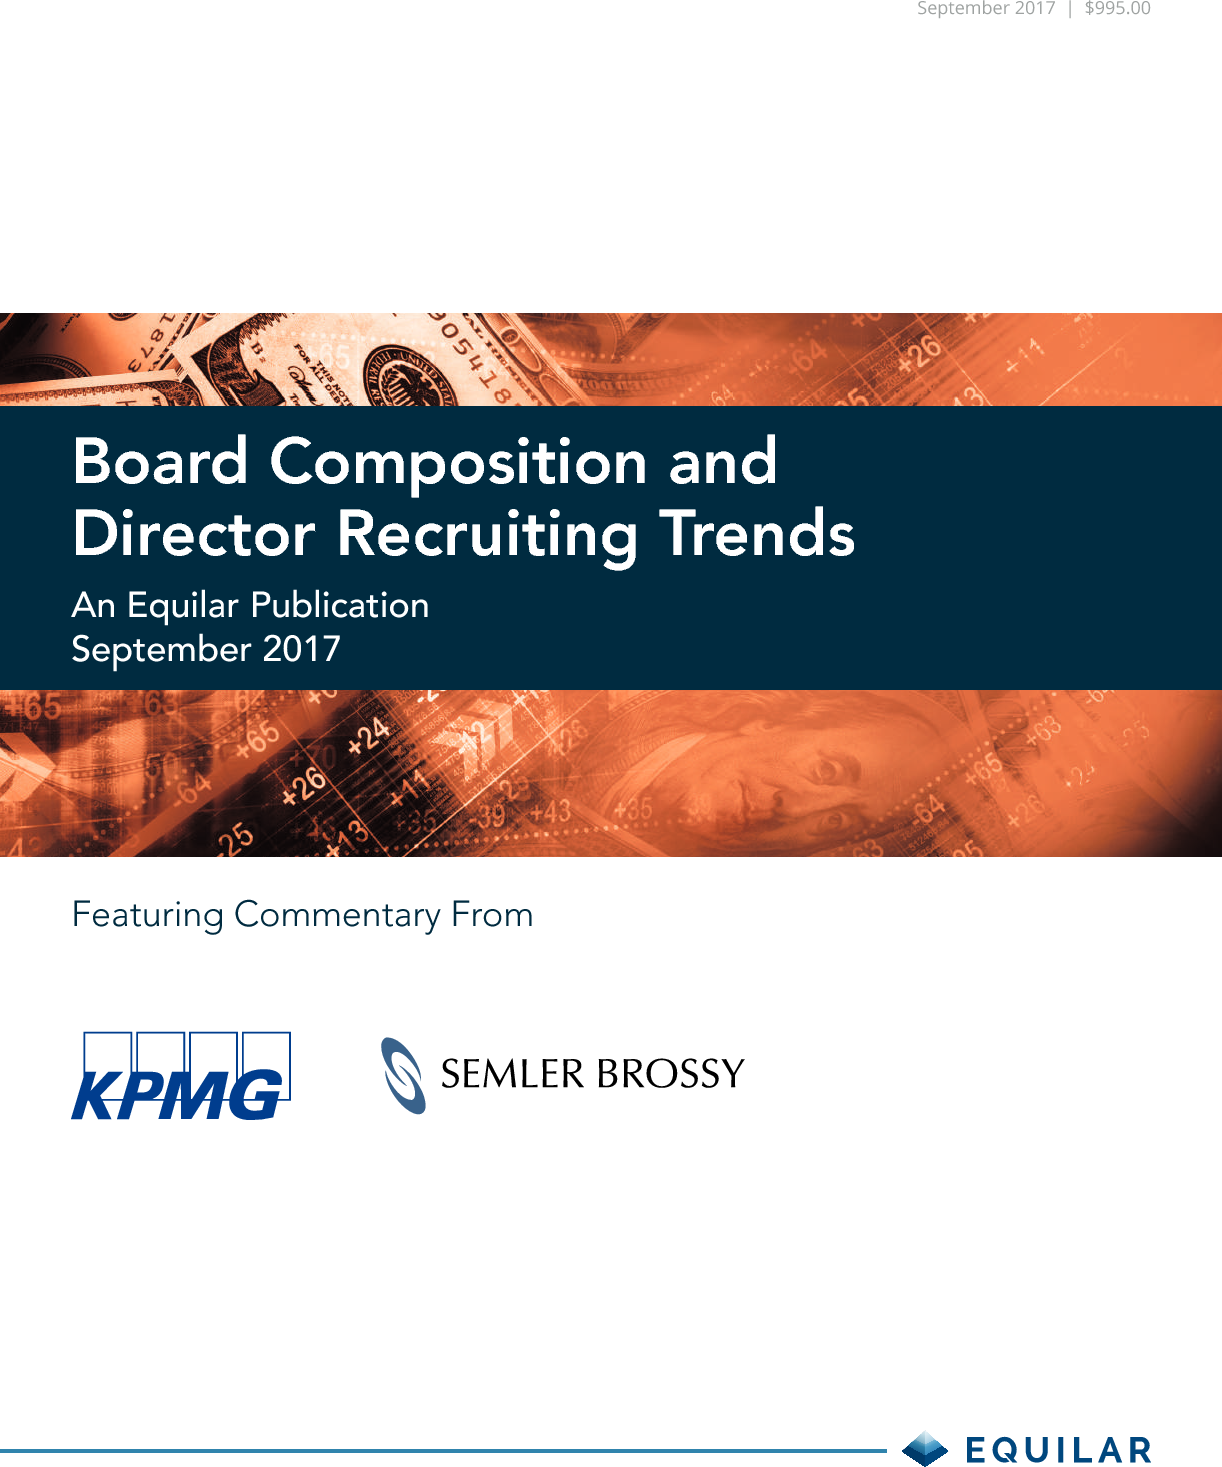 Board Composition and Director Recruiting Trends: Beyond the Numbers